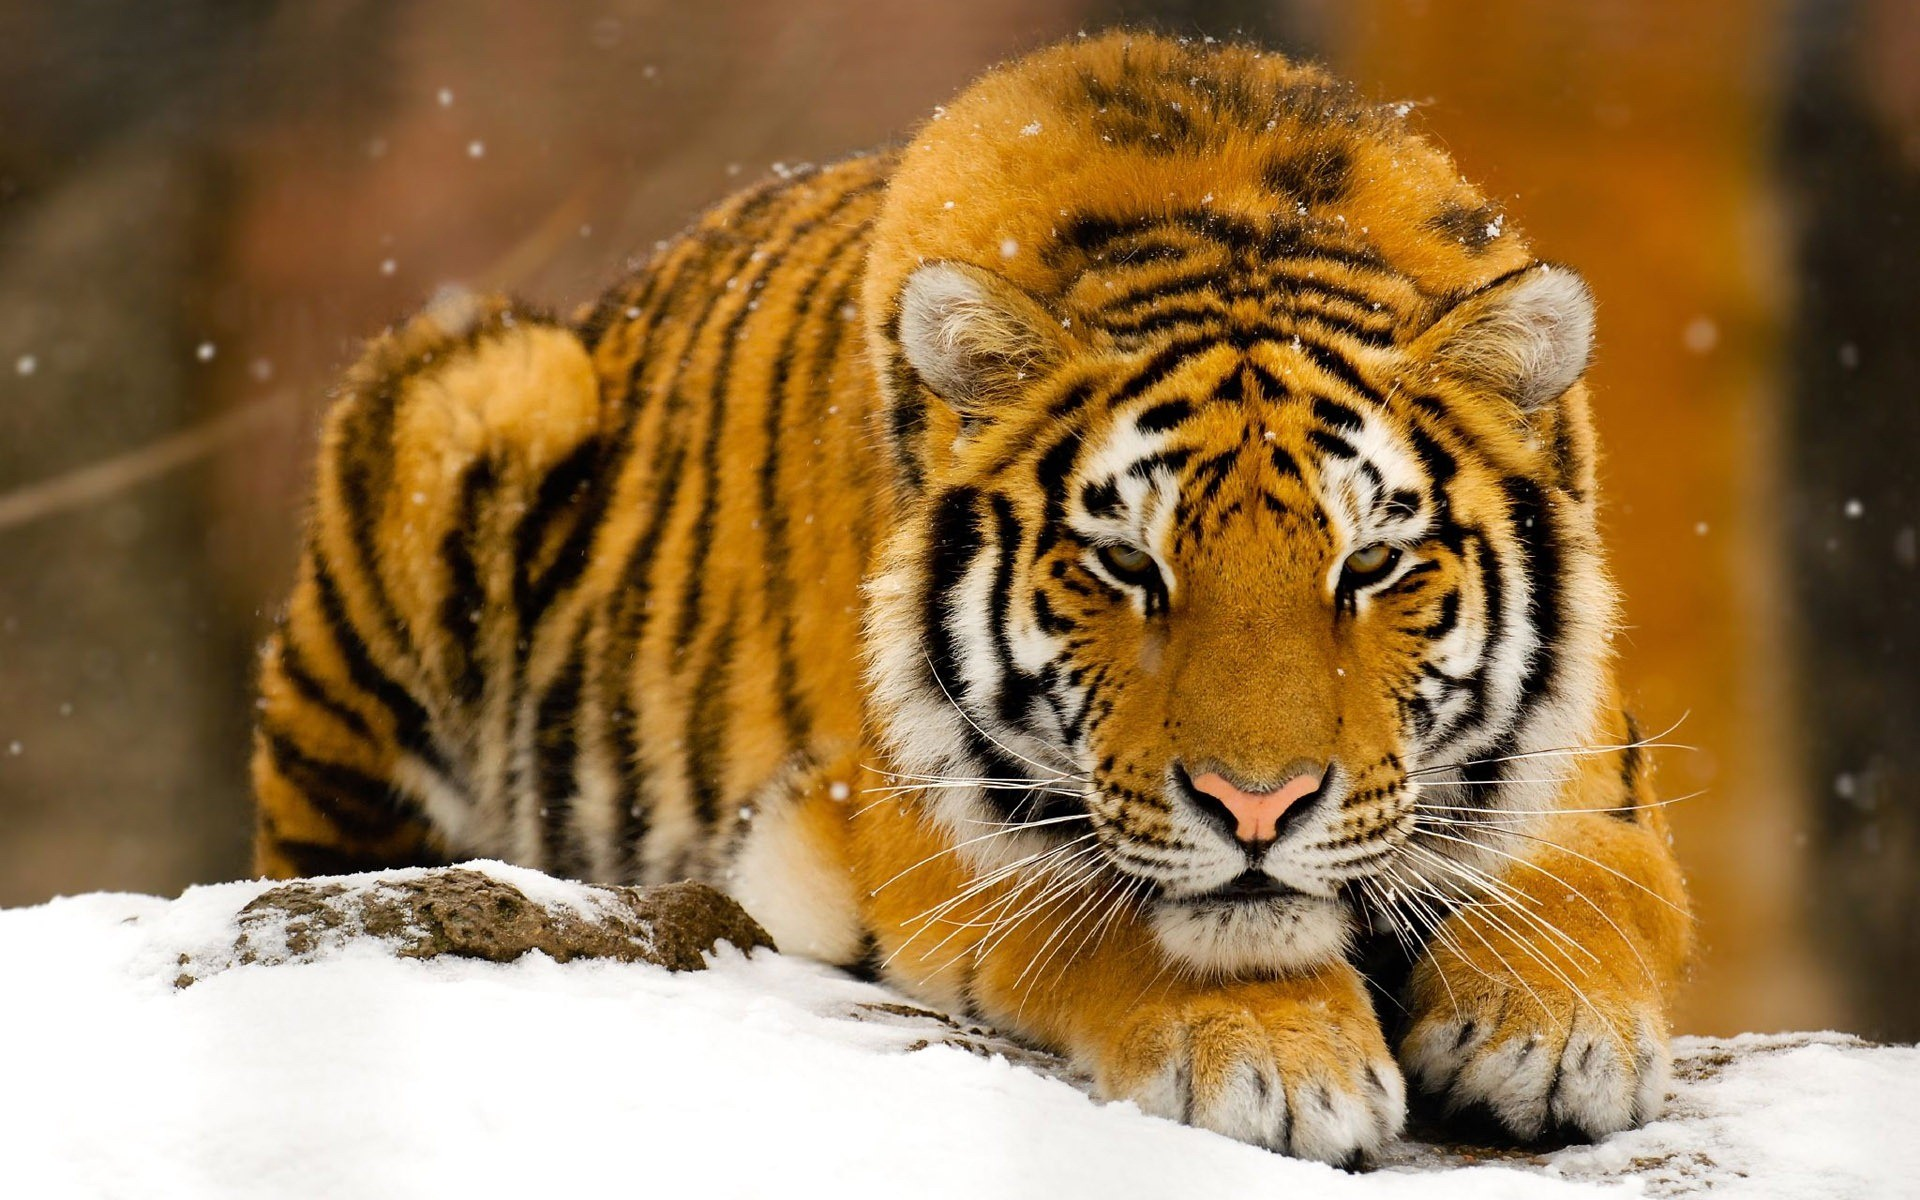 49 Animal Wallpapers ① Download Free Amazing Hd Backgrounds For